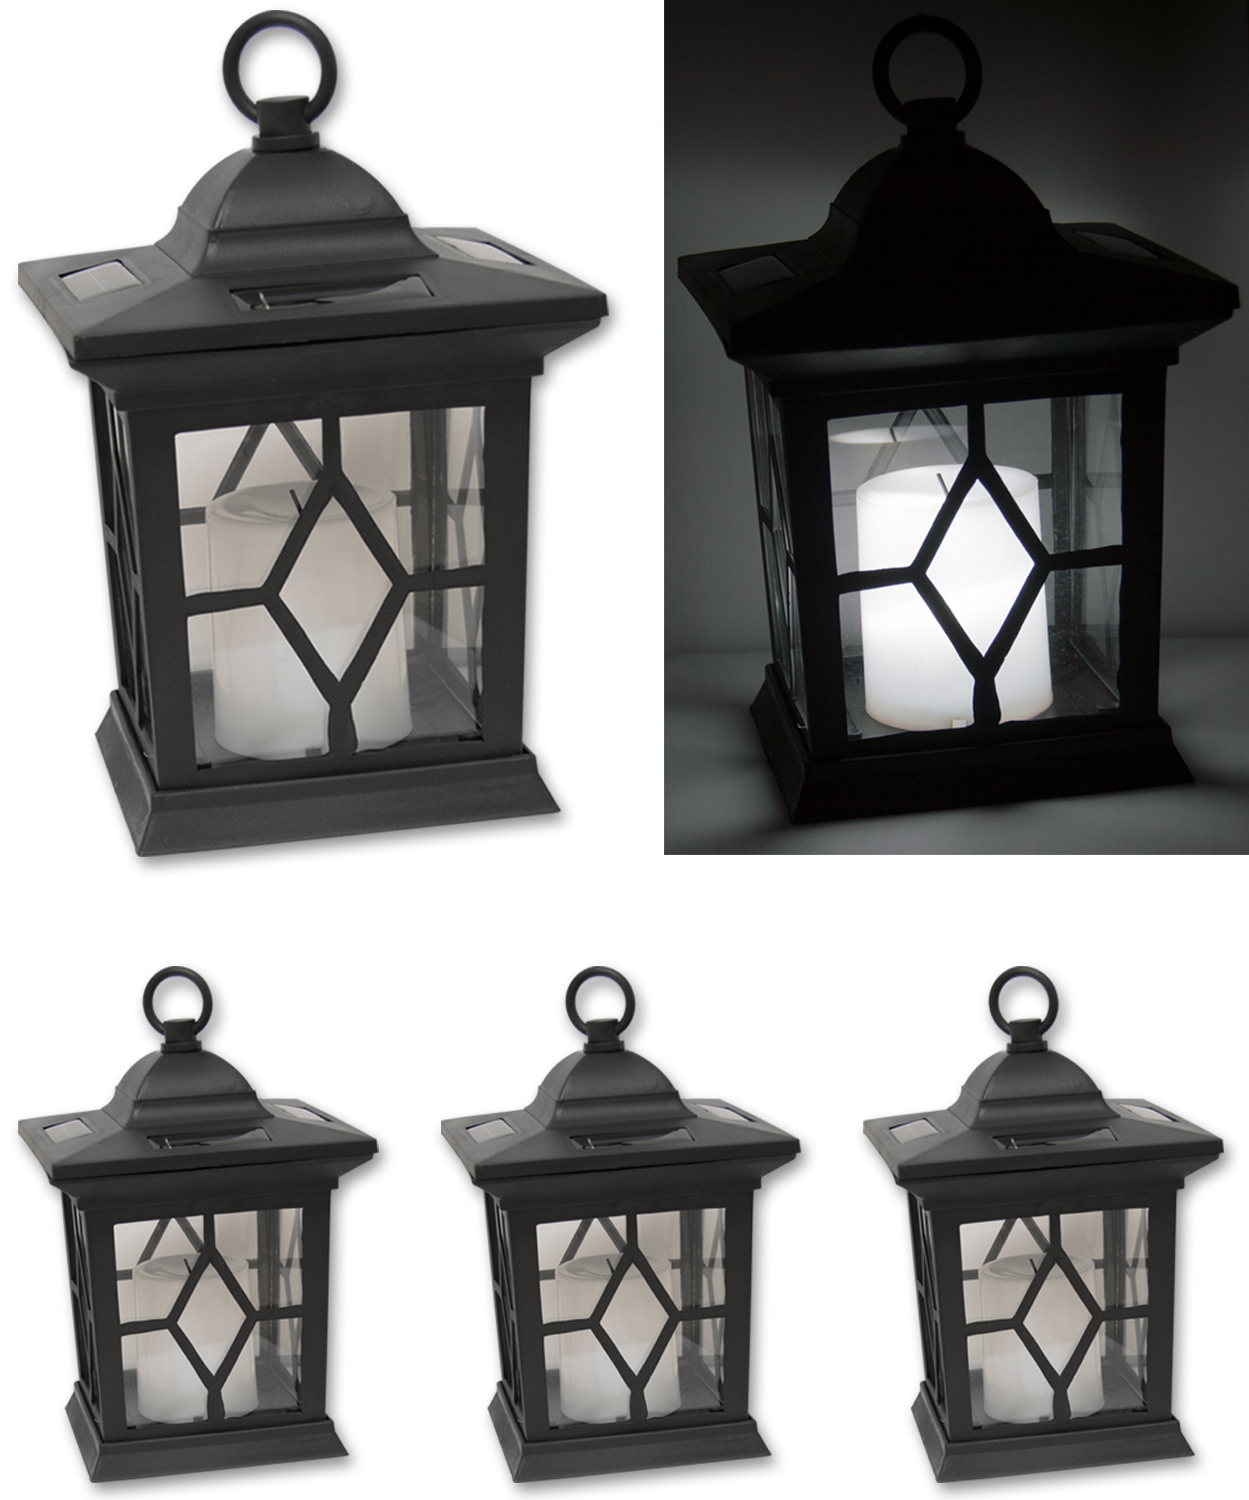 2 X 2 X Woodside Hanging Candle Lanterns Lighting Outdoor Value